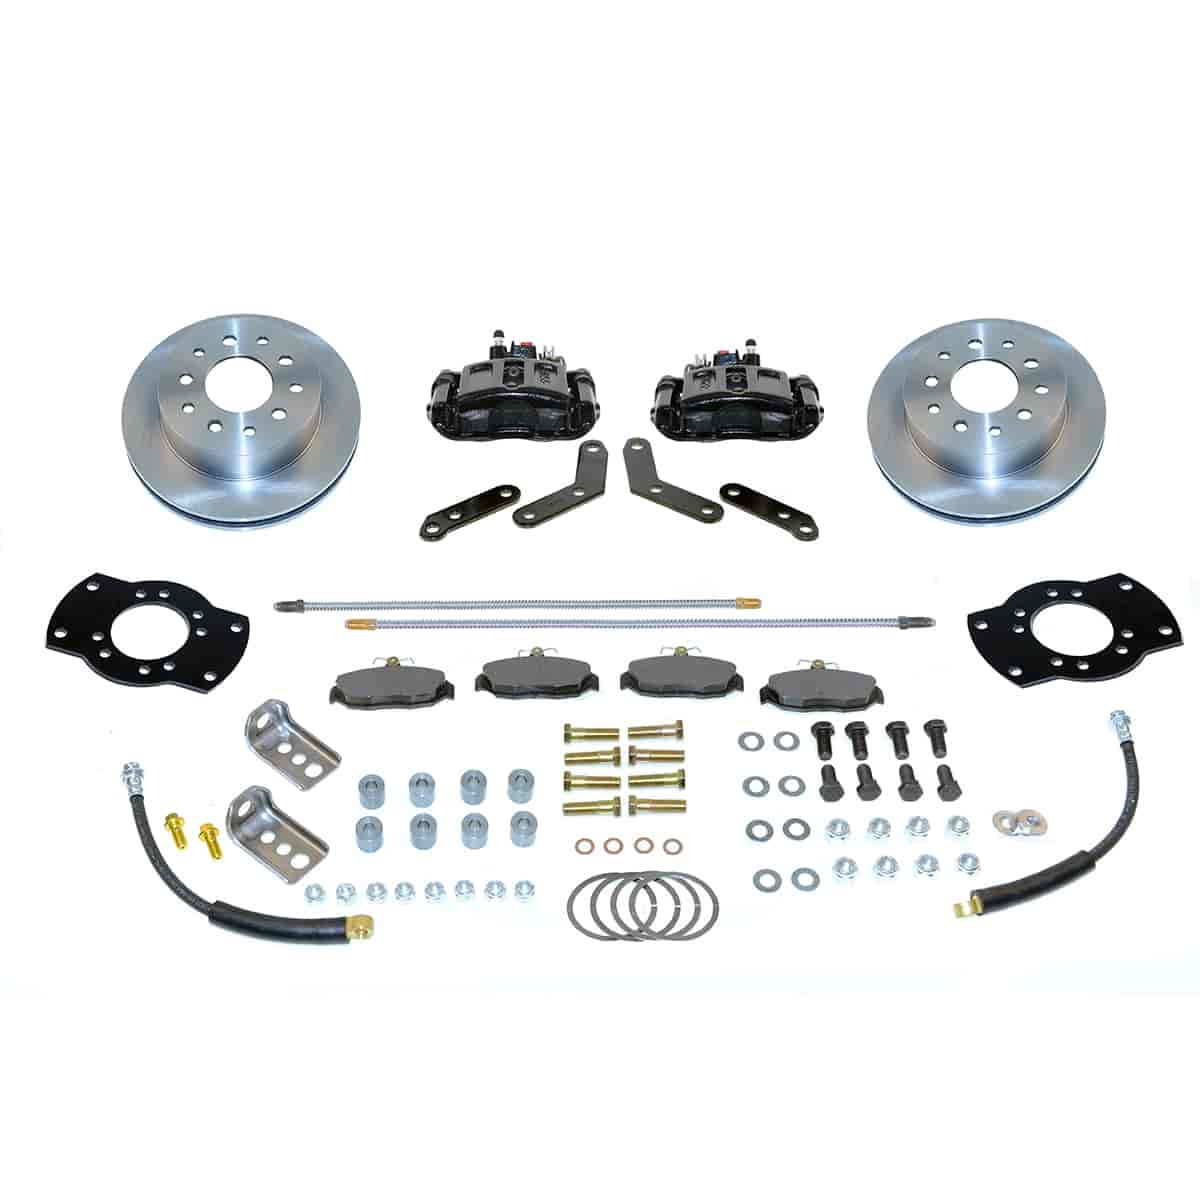 SSBC A125BK - Stainless Steel Brakes Single Piston Rear Disc Brake Conversion Kit